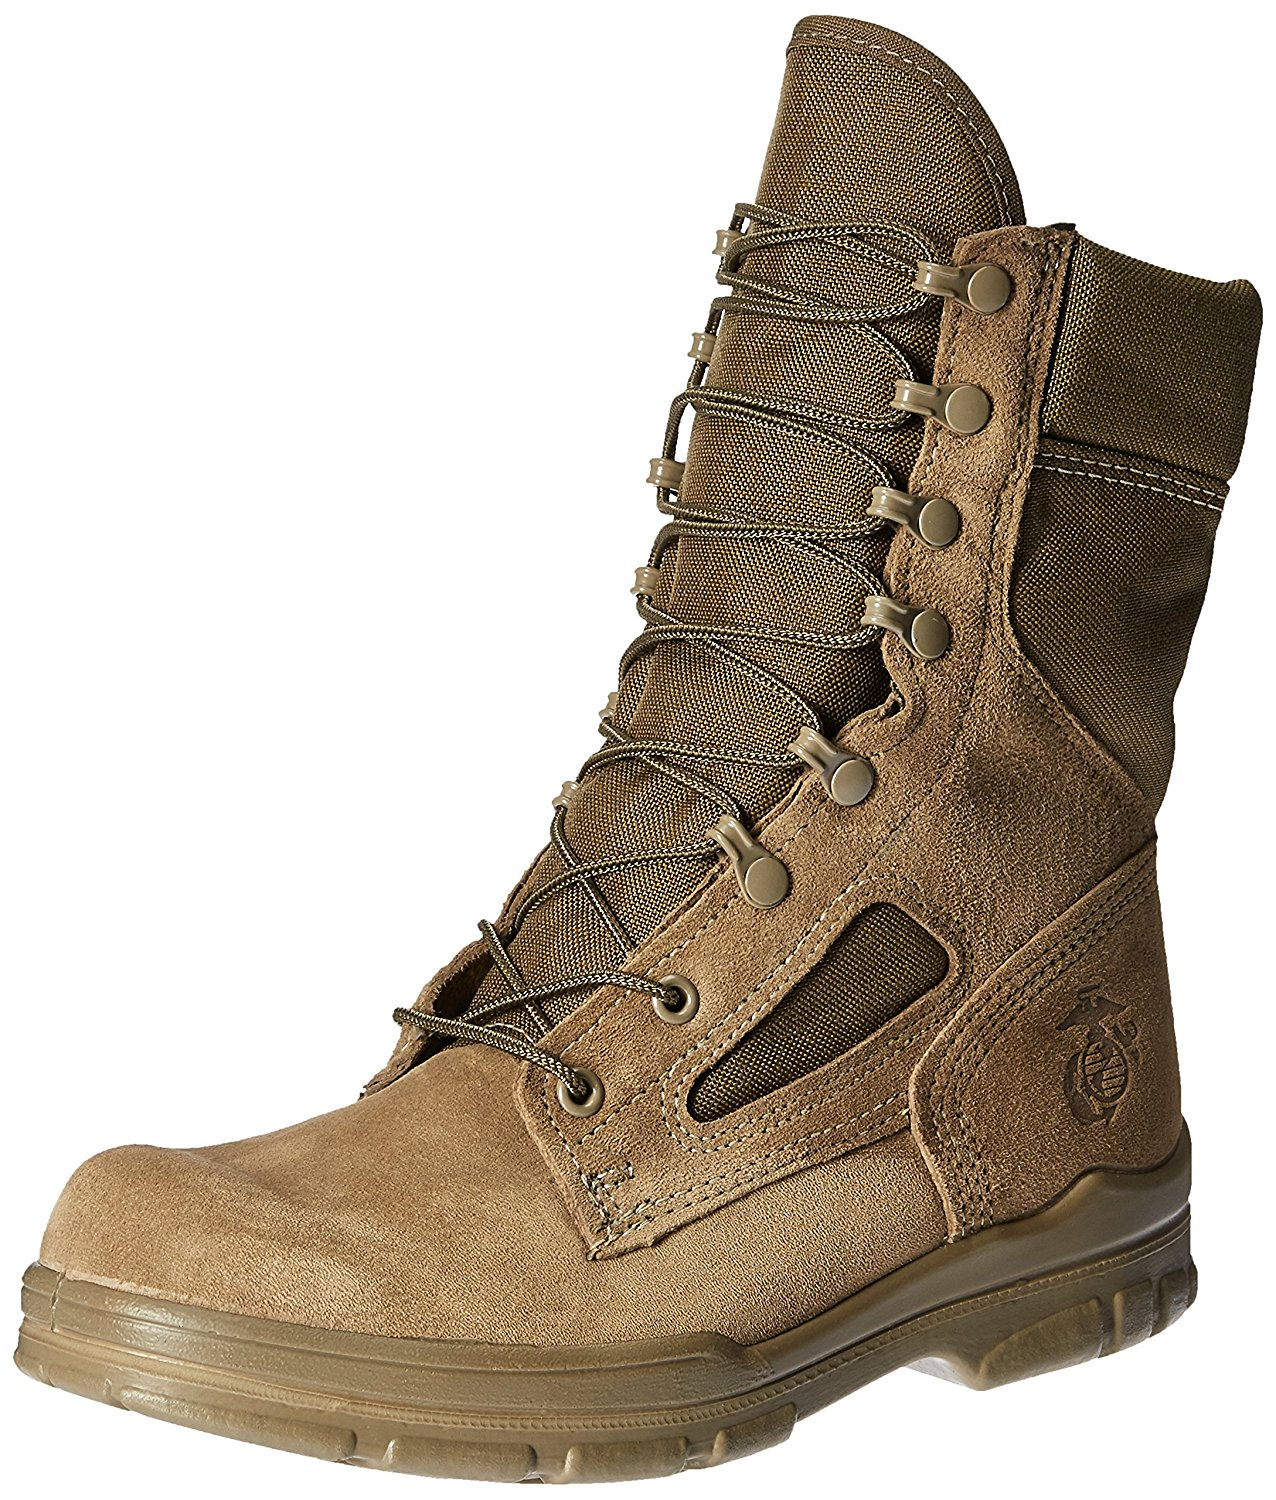 Cheap Bates Military Boot, find Bates Military Boot deals on